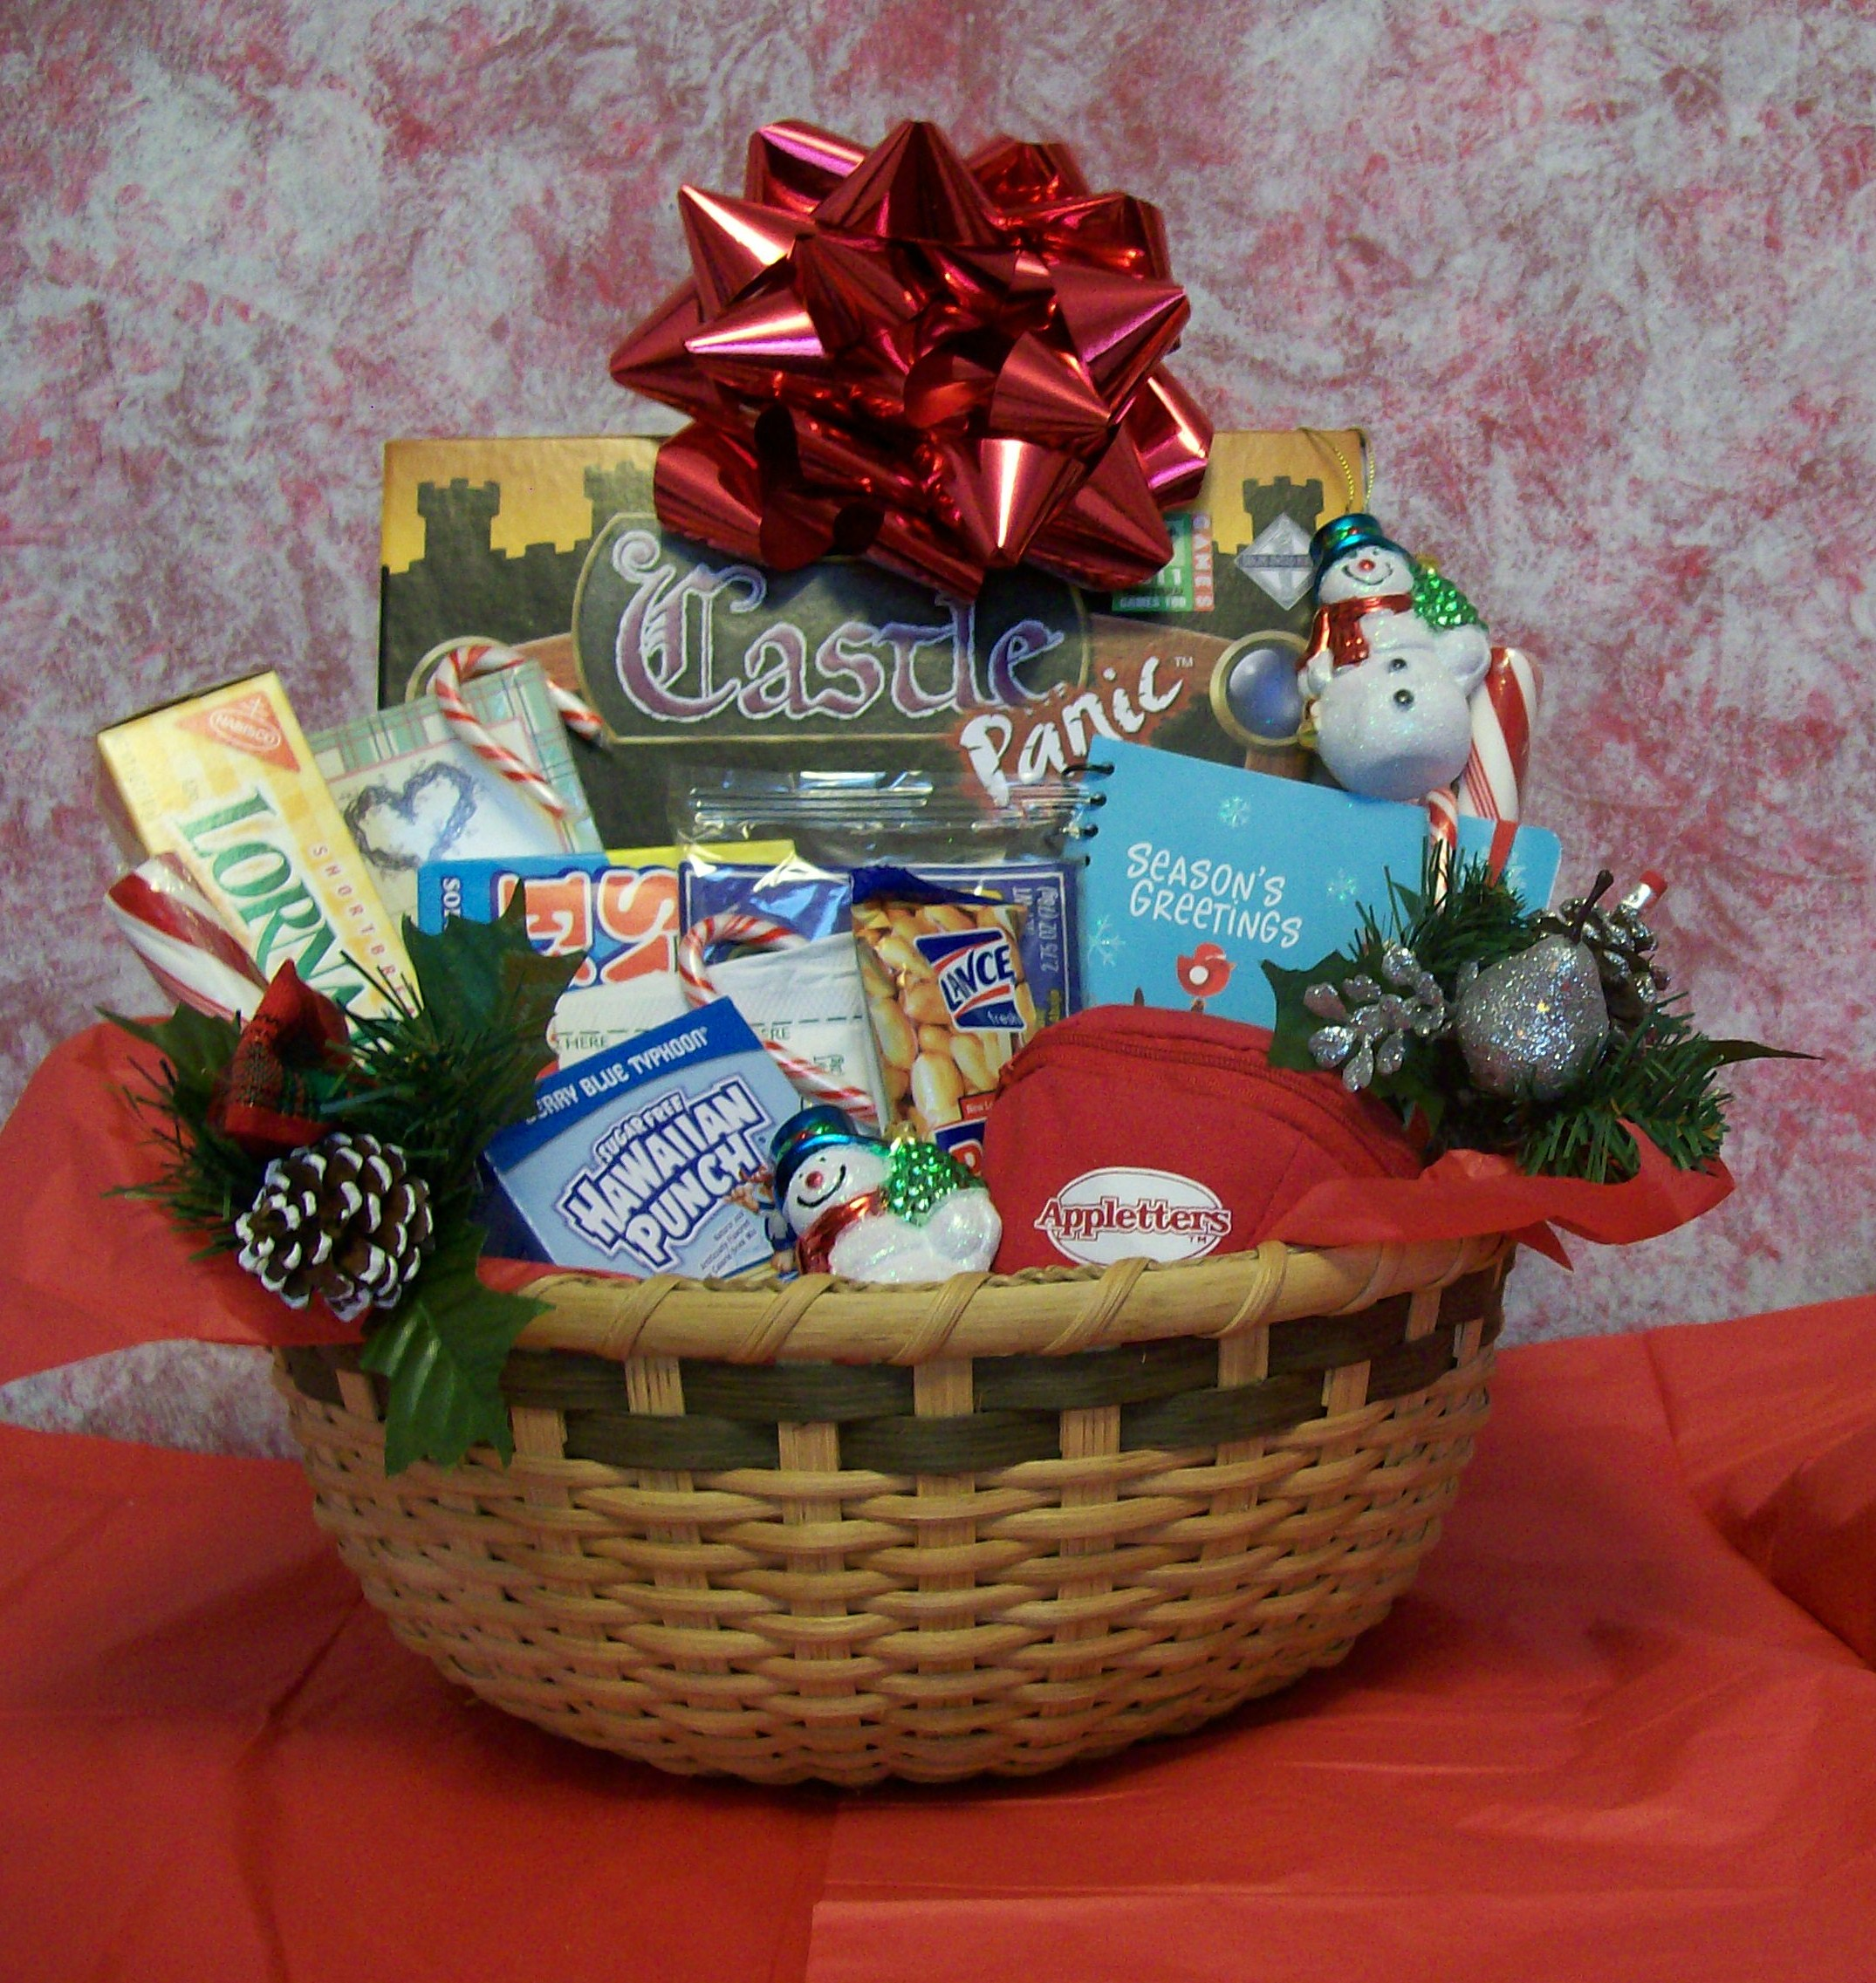 Game articles all about fun and games ten best fun and games gift baskets for christmas negle